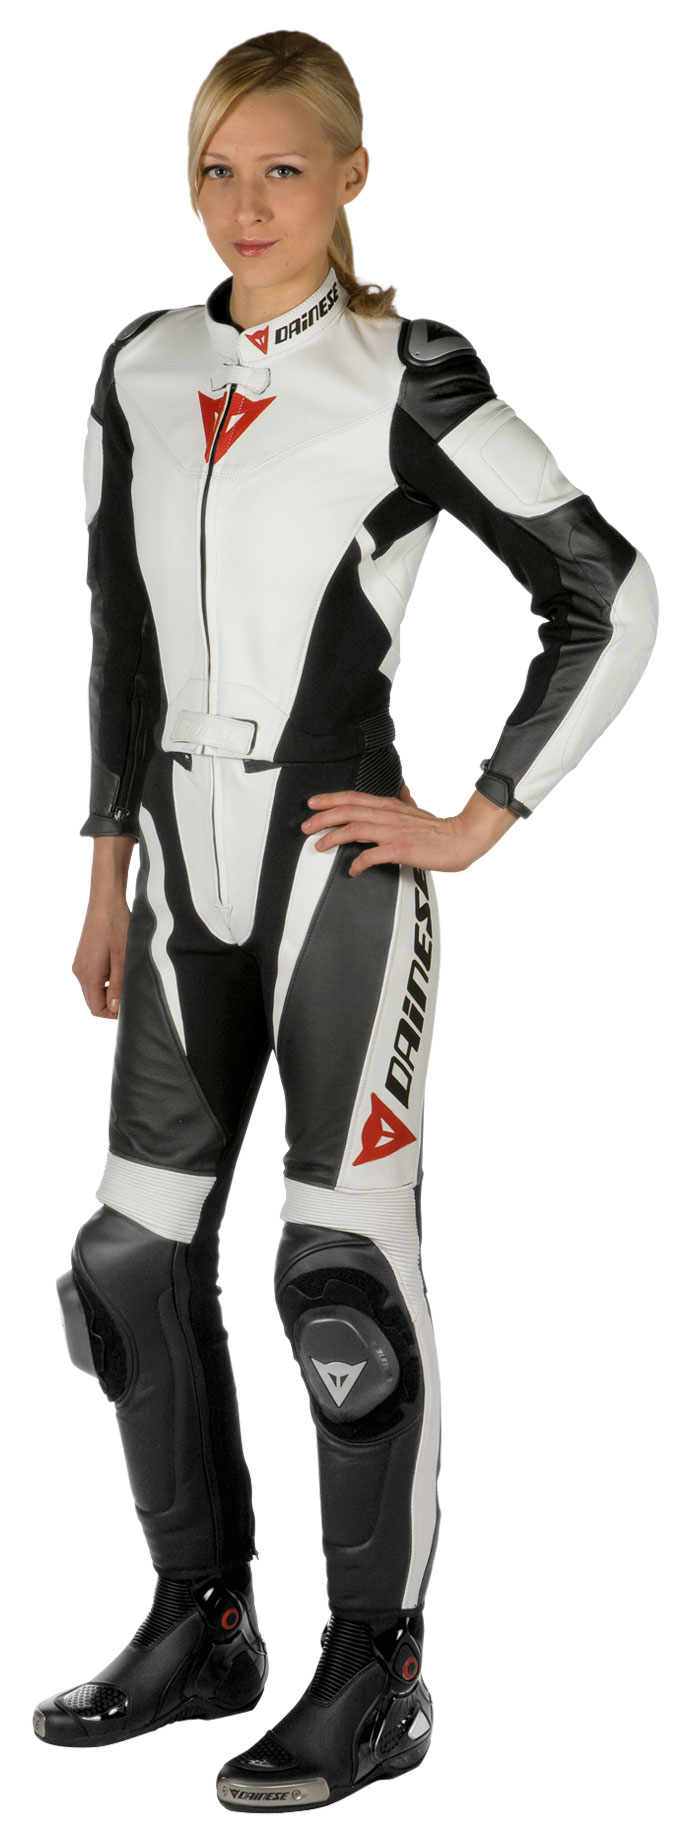 Divisible woman biker motorcycle jacket Dainese Avro Leather Whi